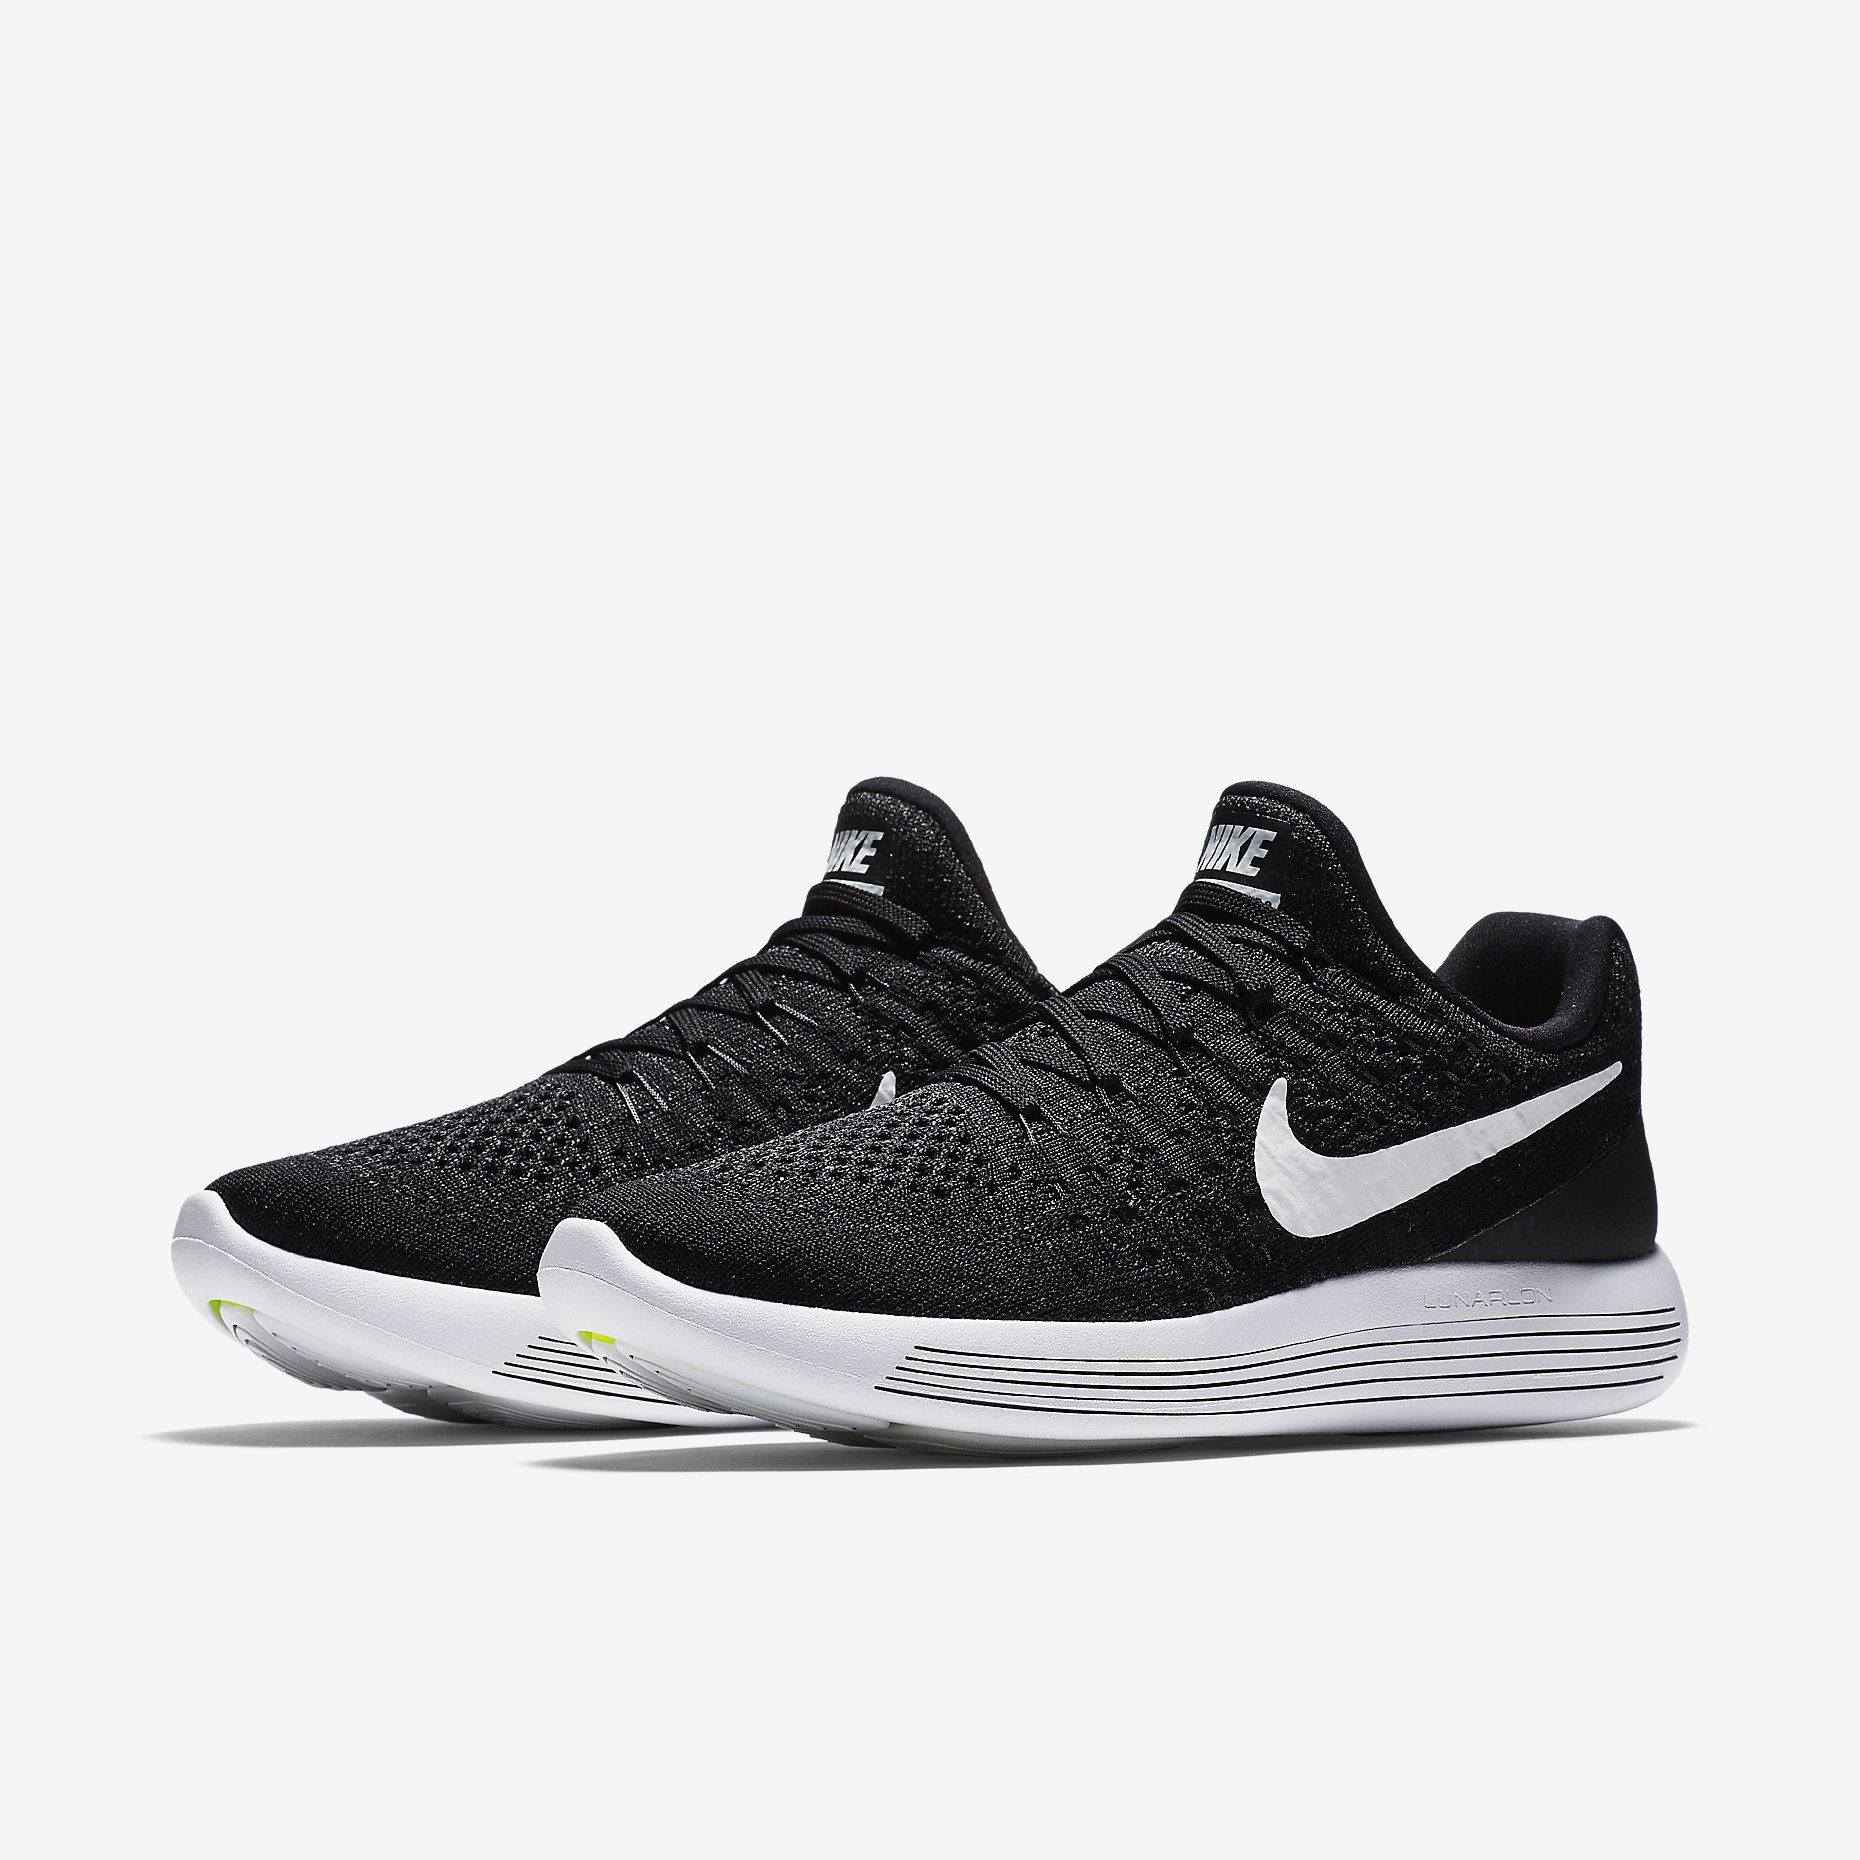 sold worldwide top fashion innovative design Nike LunarEpic Low FlyKnit 2 Womens Running Shoes